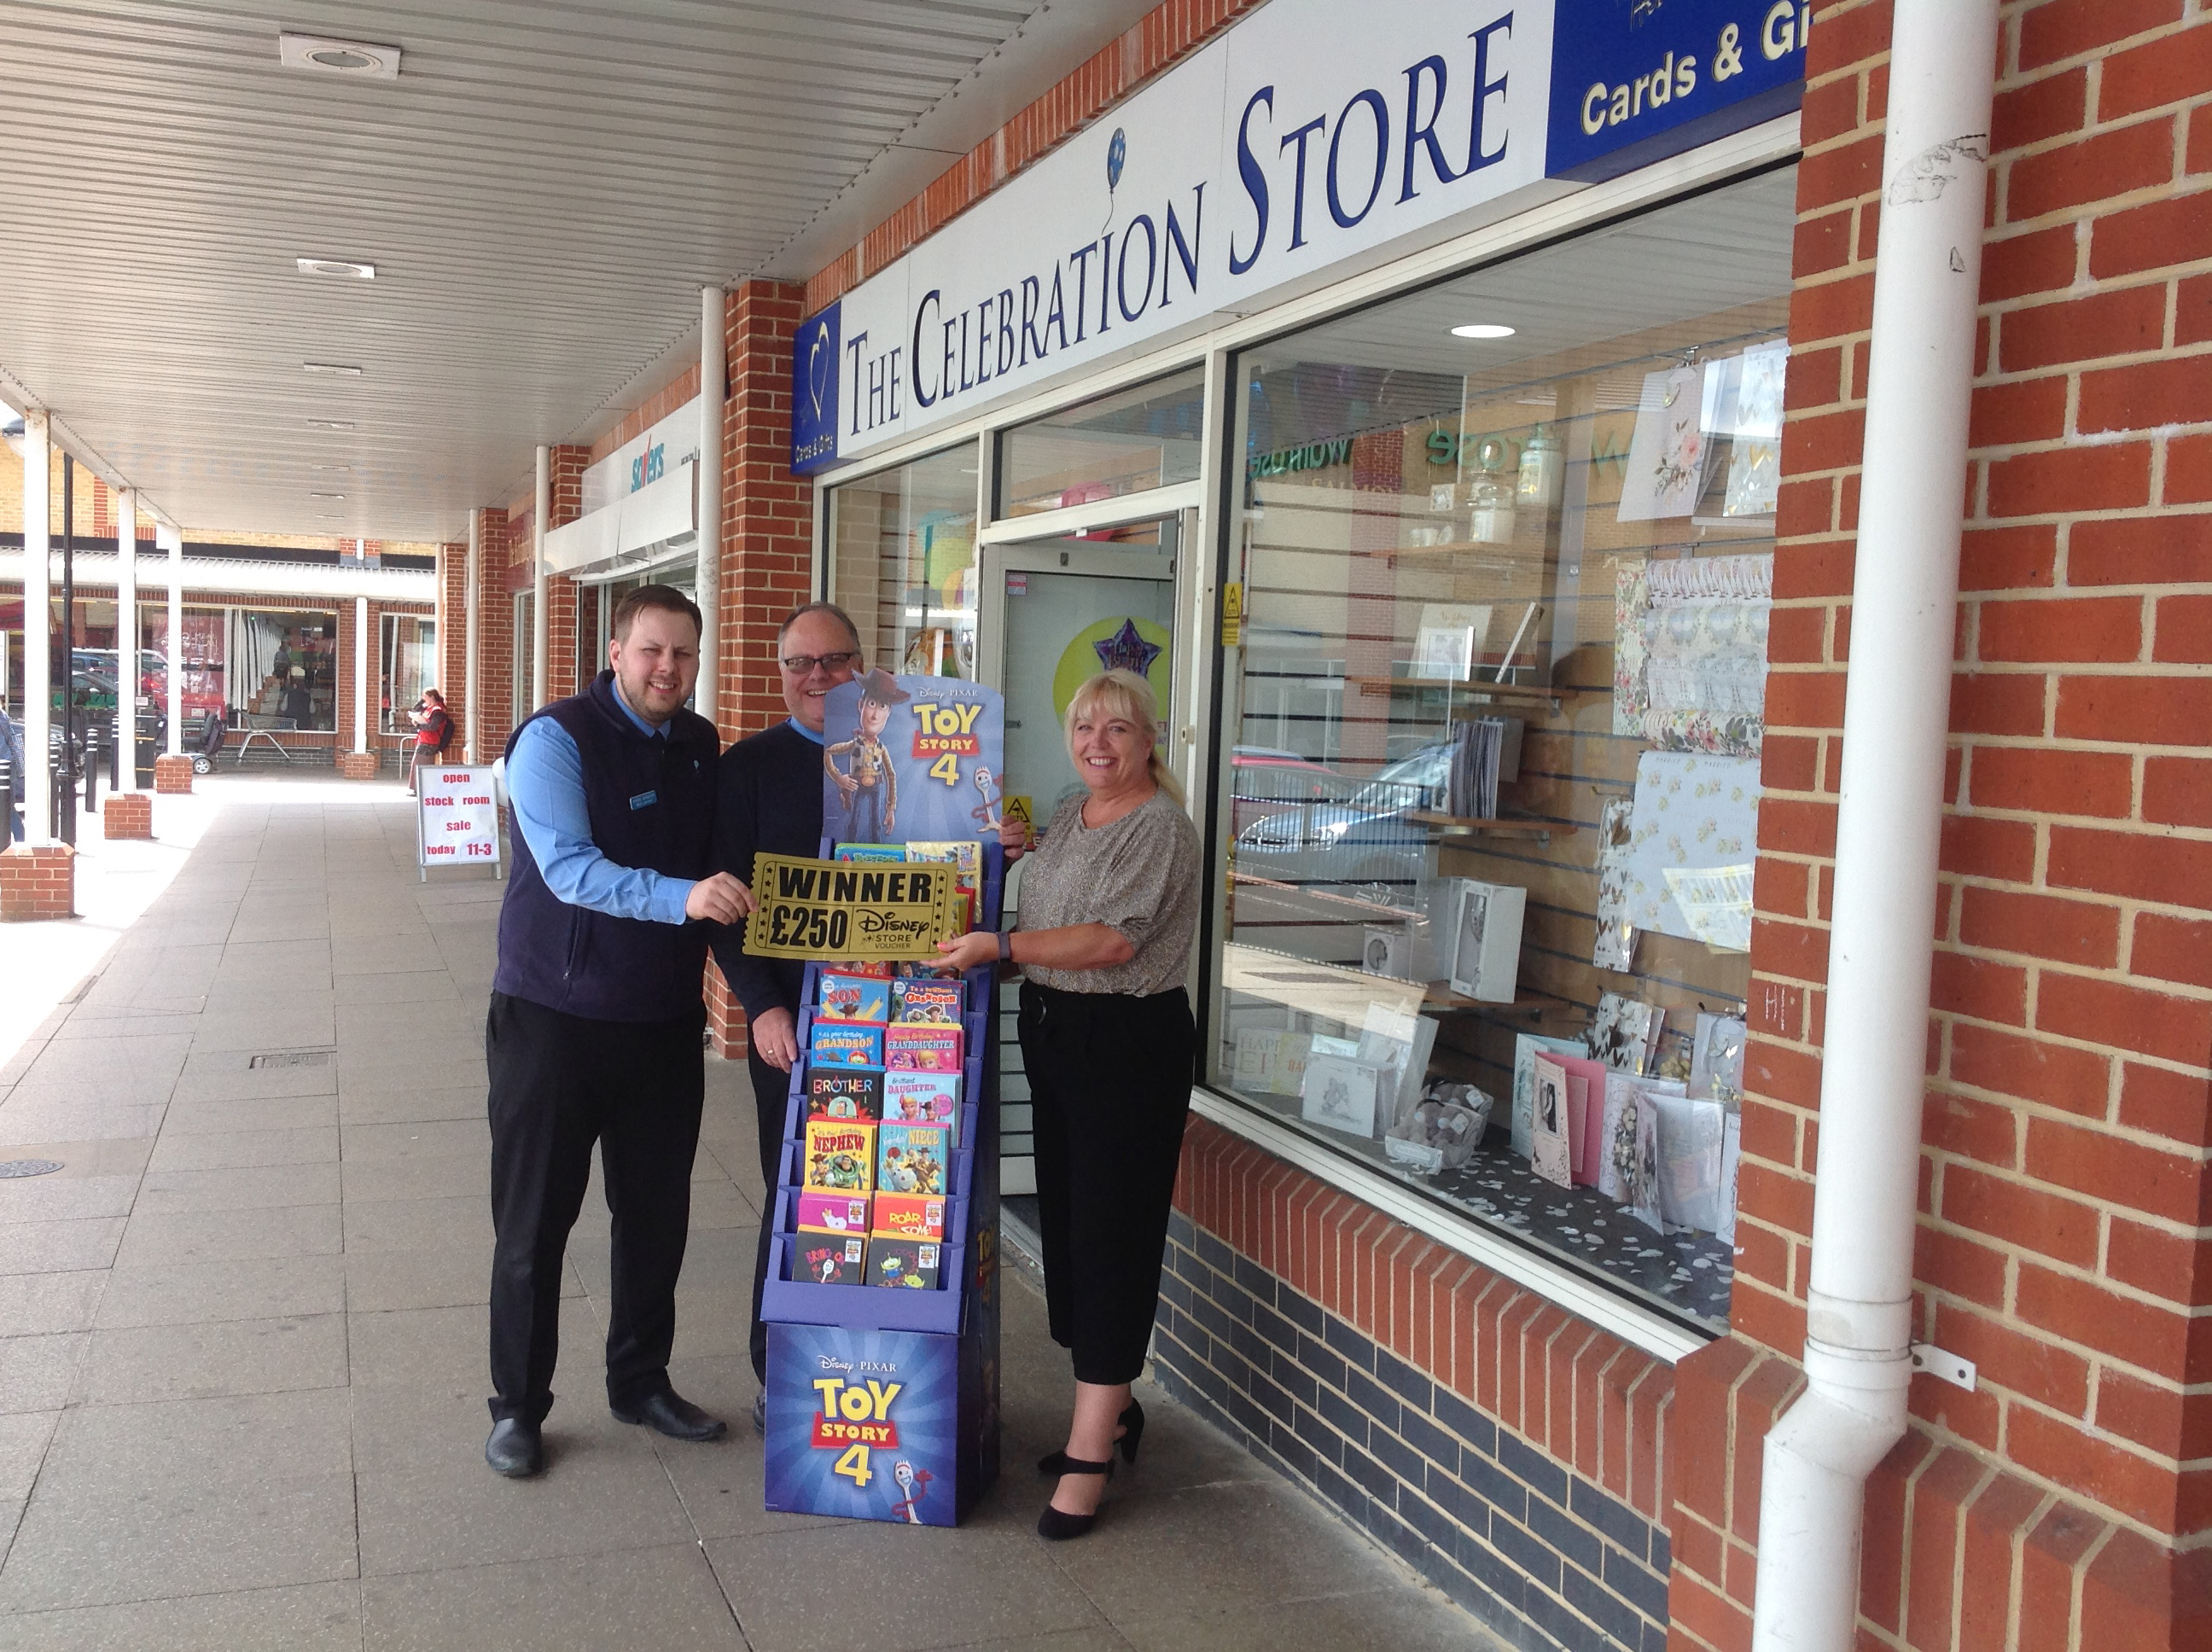 Above: (left-right) Ryan and Chris Jenkins with UKG sales exec Tracey Markham outside the store with the Toy Story display unit and prize voucher.